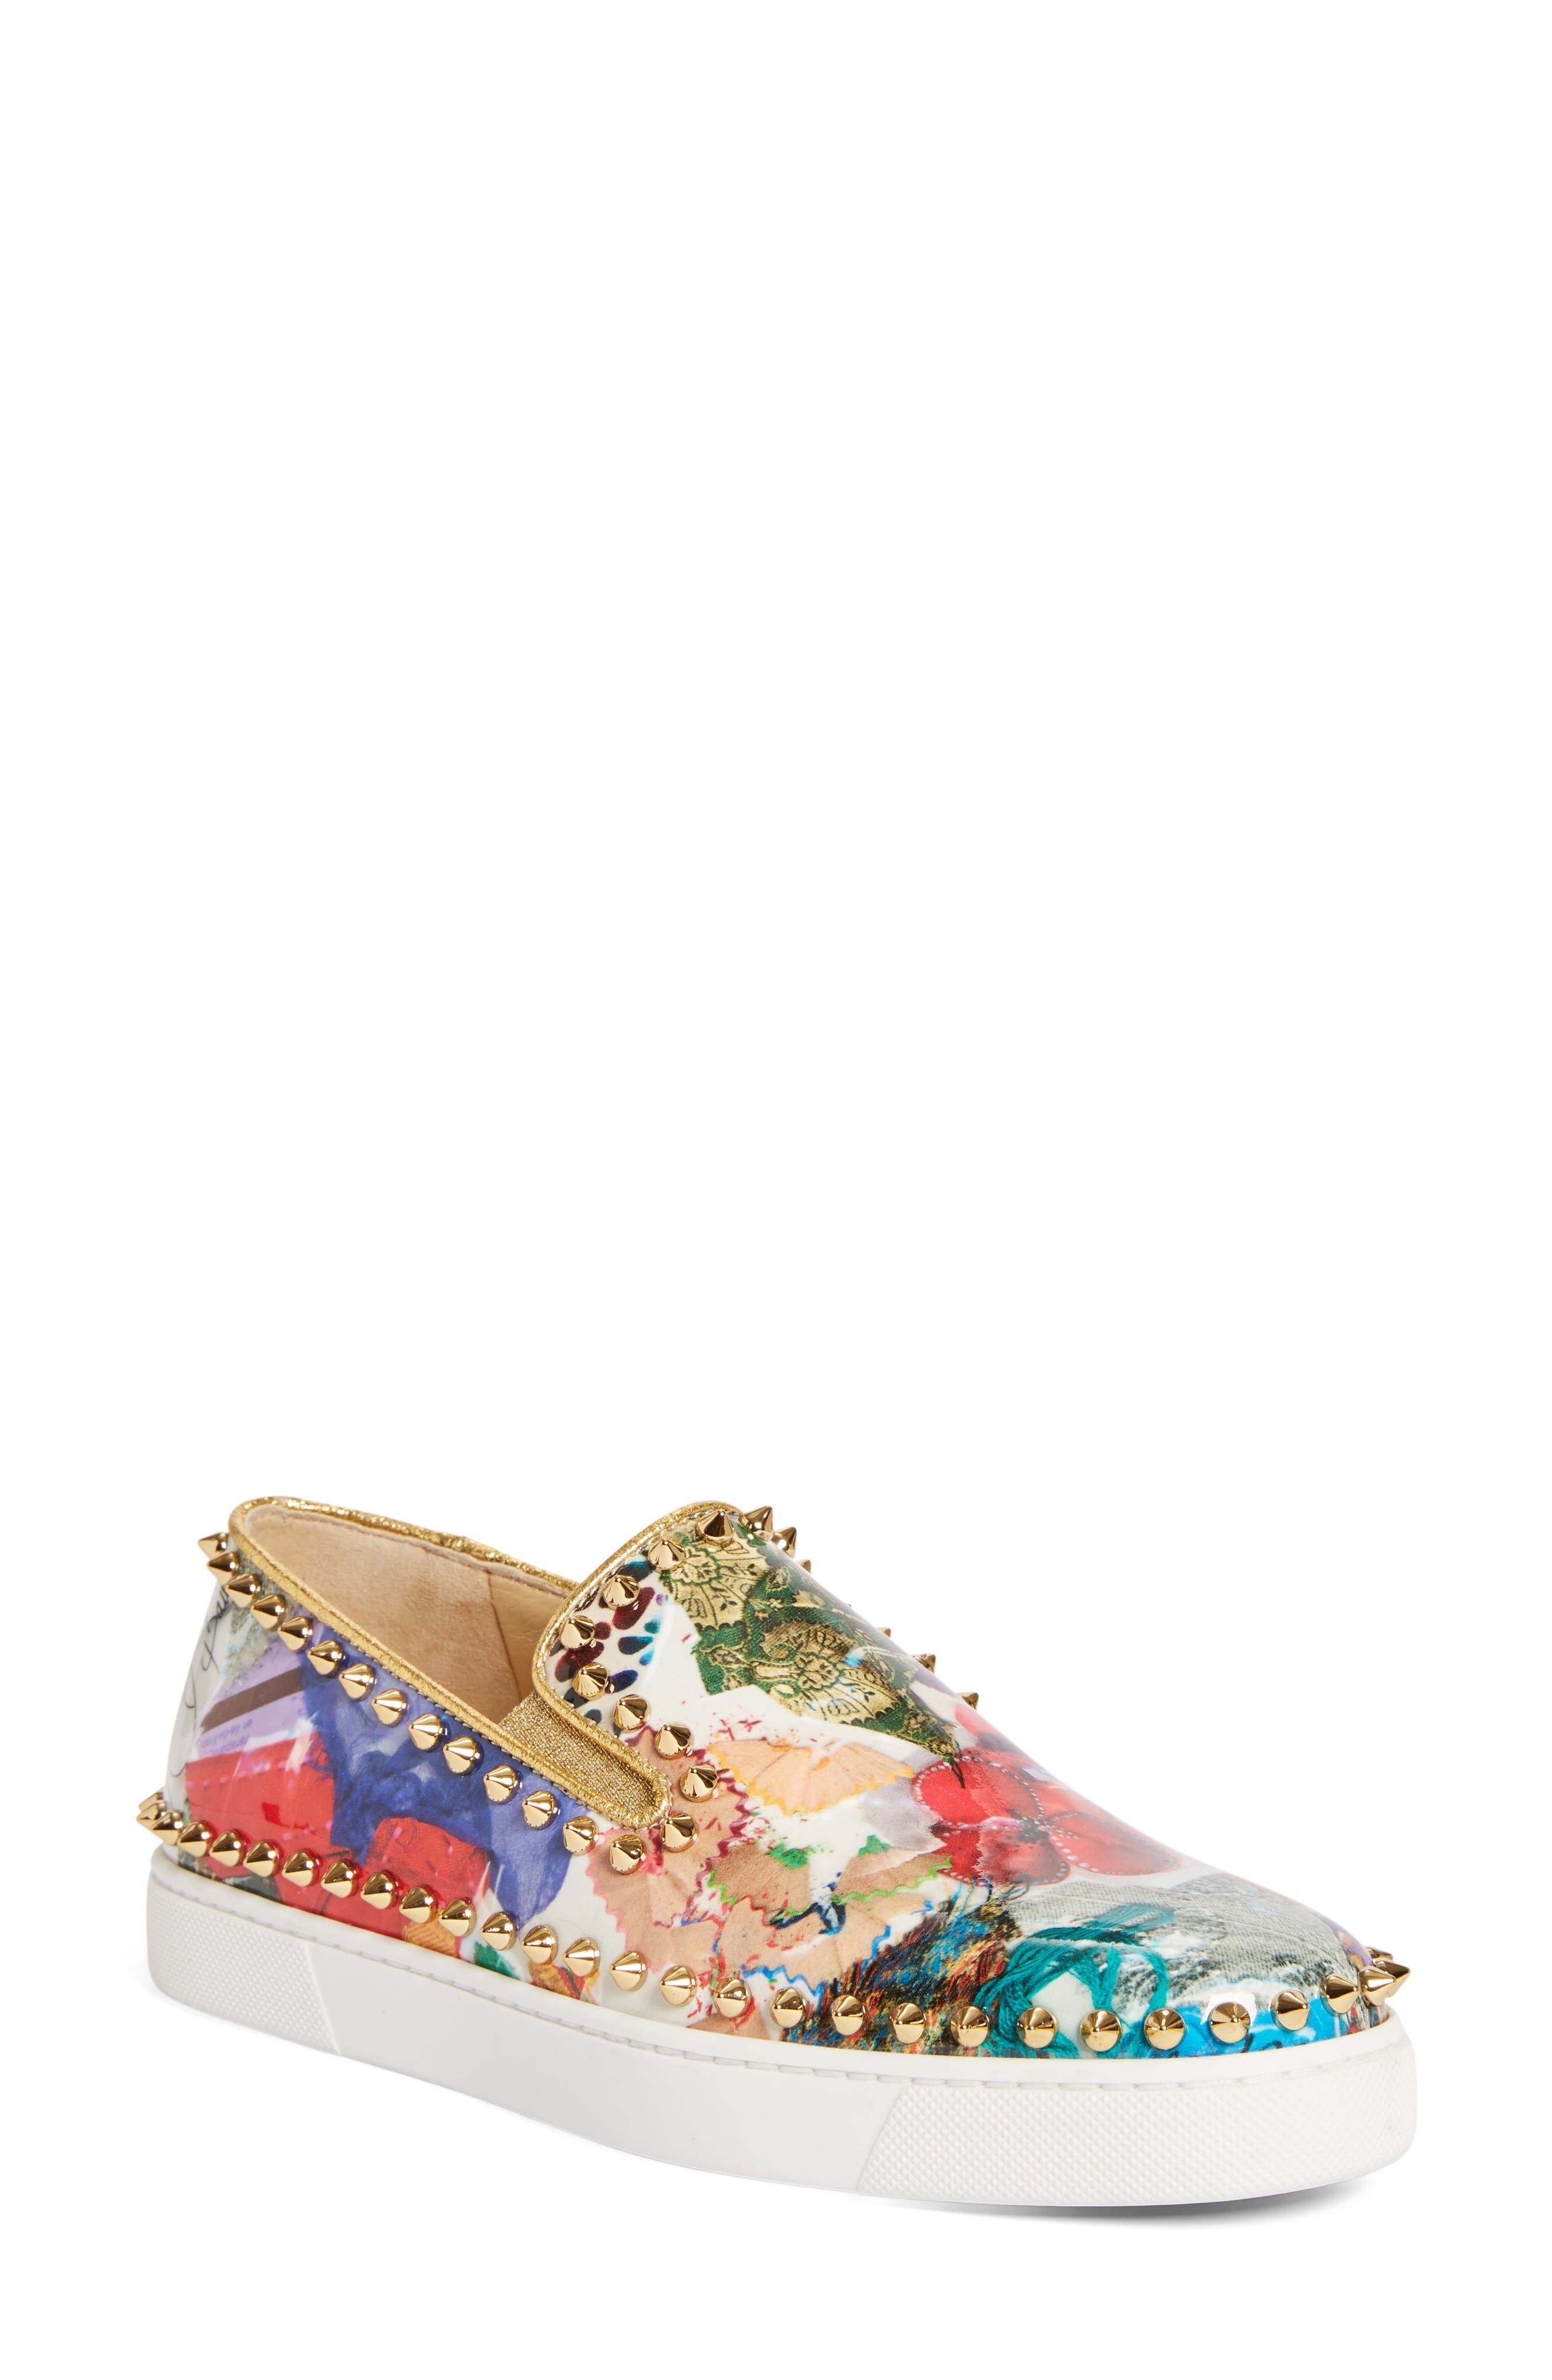 Christian Louboutin Pik Boat Slip-On Sneaker (Women)